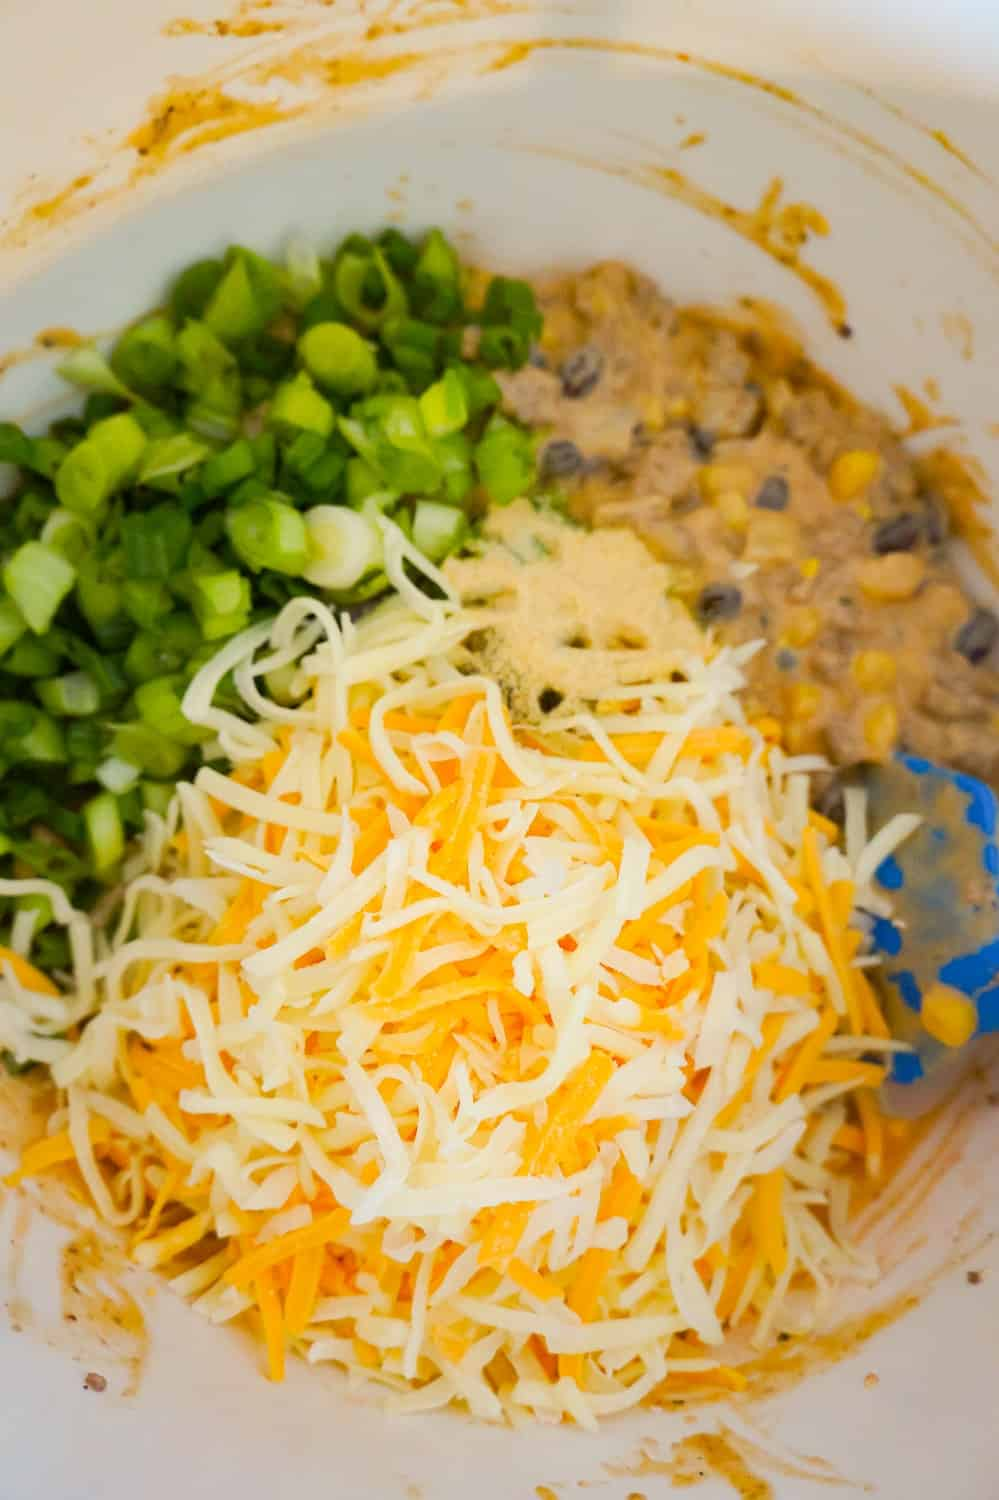 shredded cheese, chopped green onions and ground beef mixture in a mixing bowl